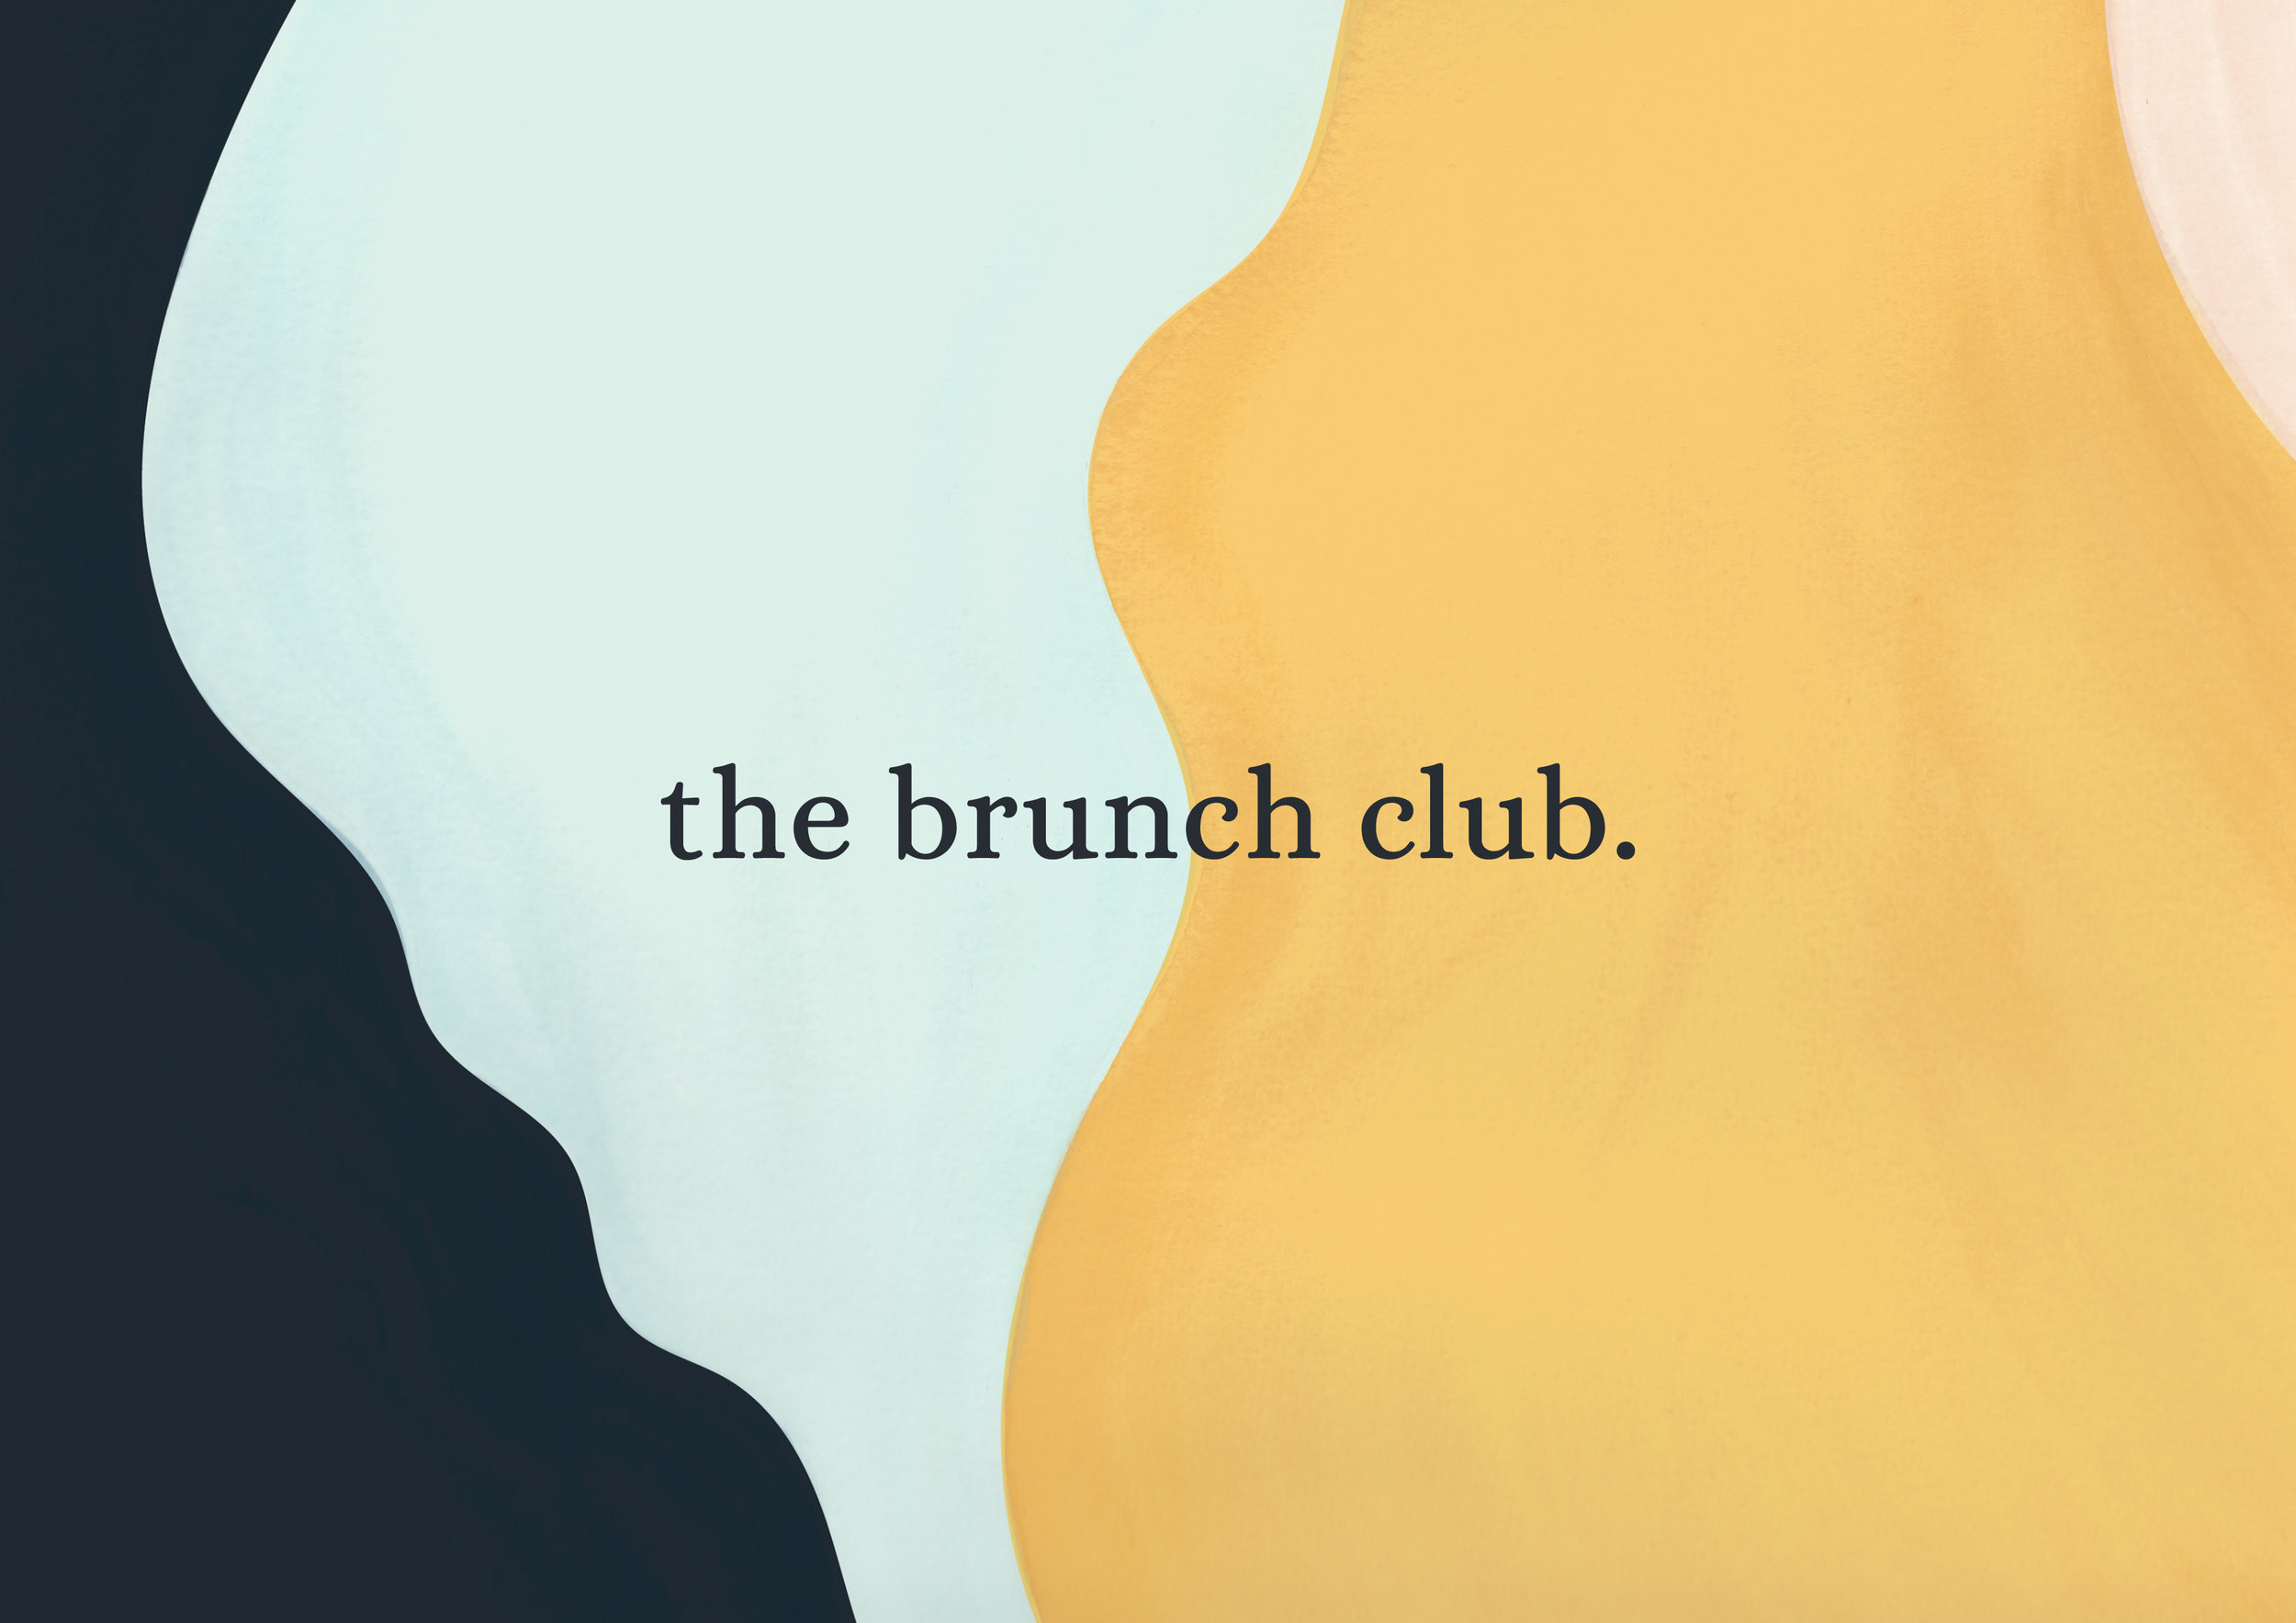 brunch club.jpg